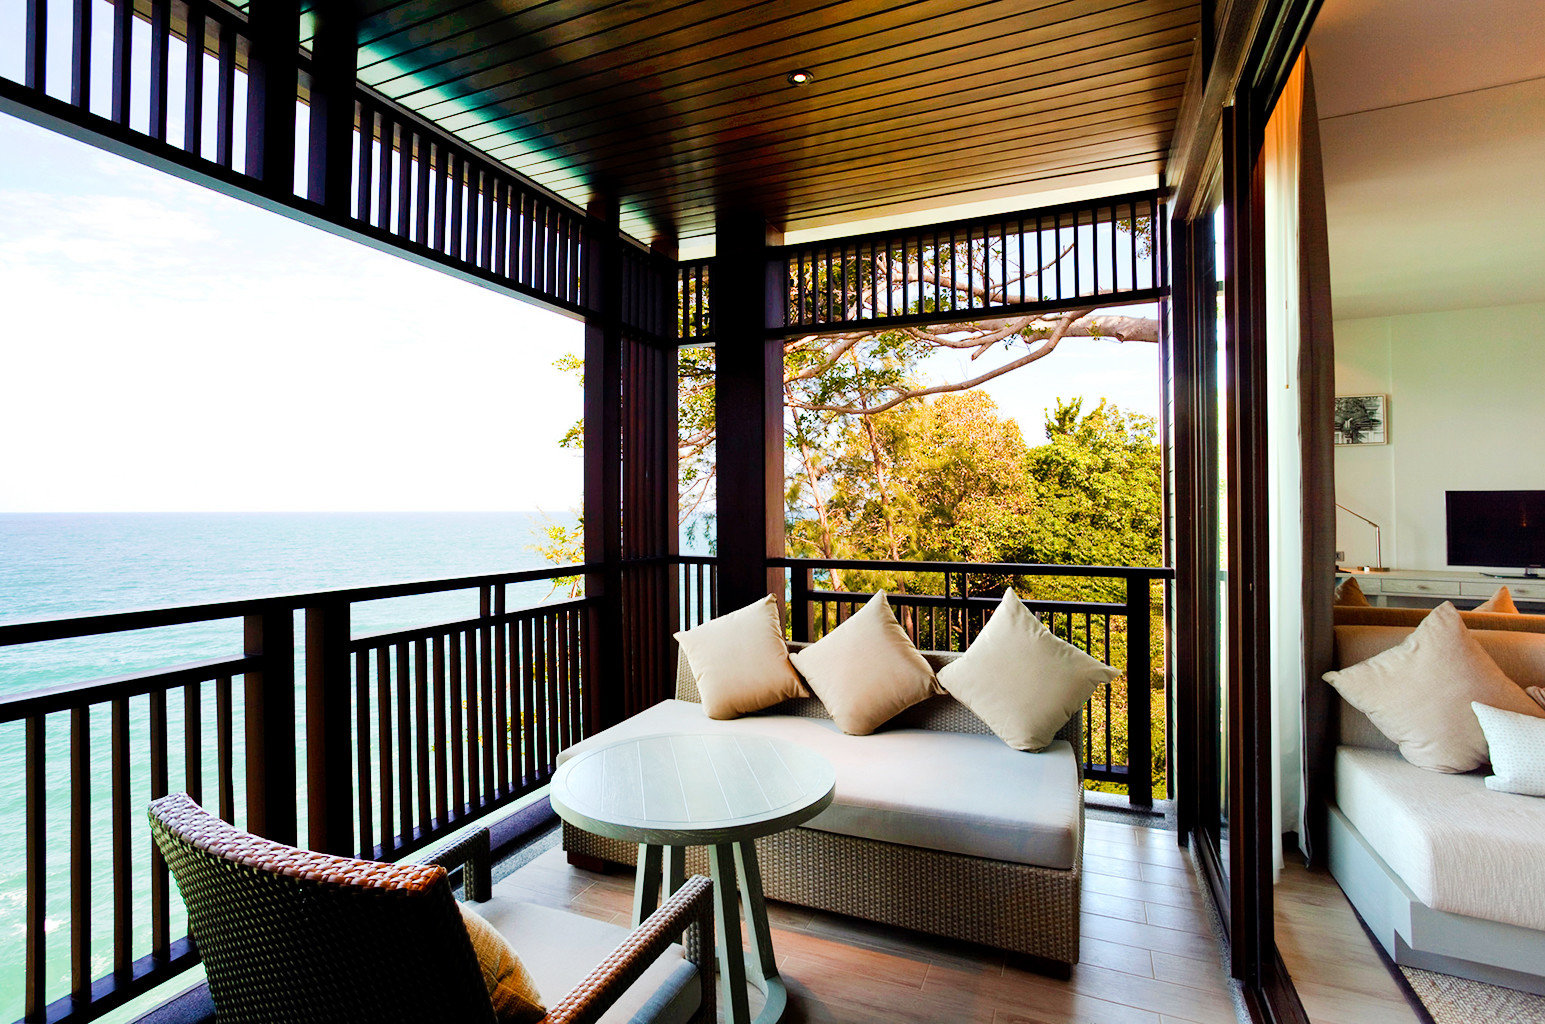 Beach Family Modern Resort chair property living room condominium home Villa Suite cottage nice overlooking dining table